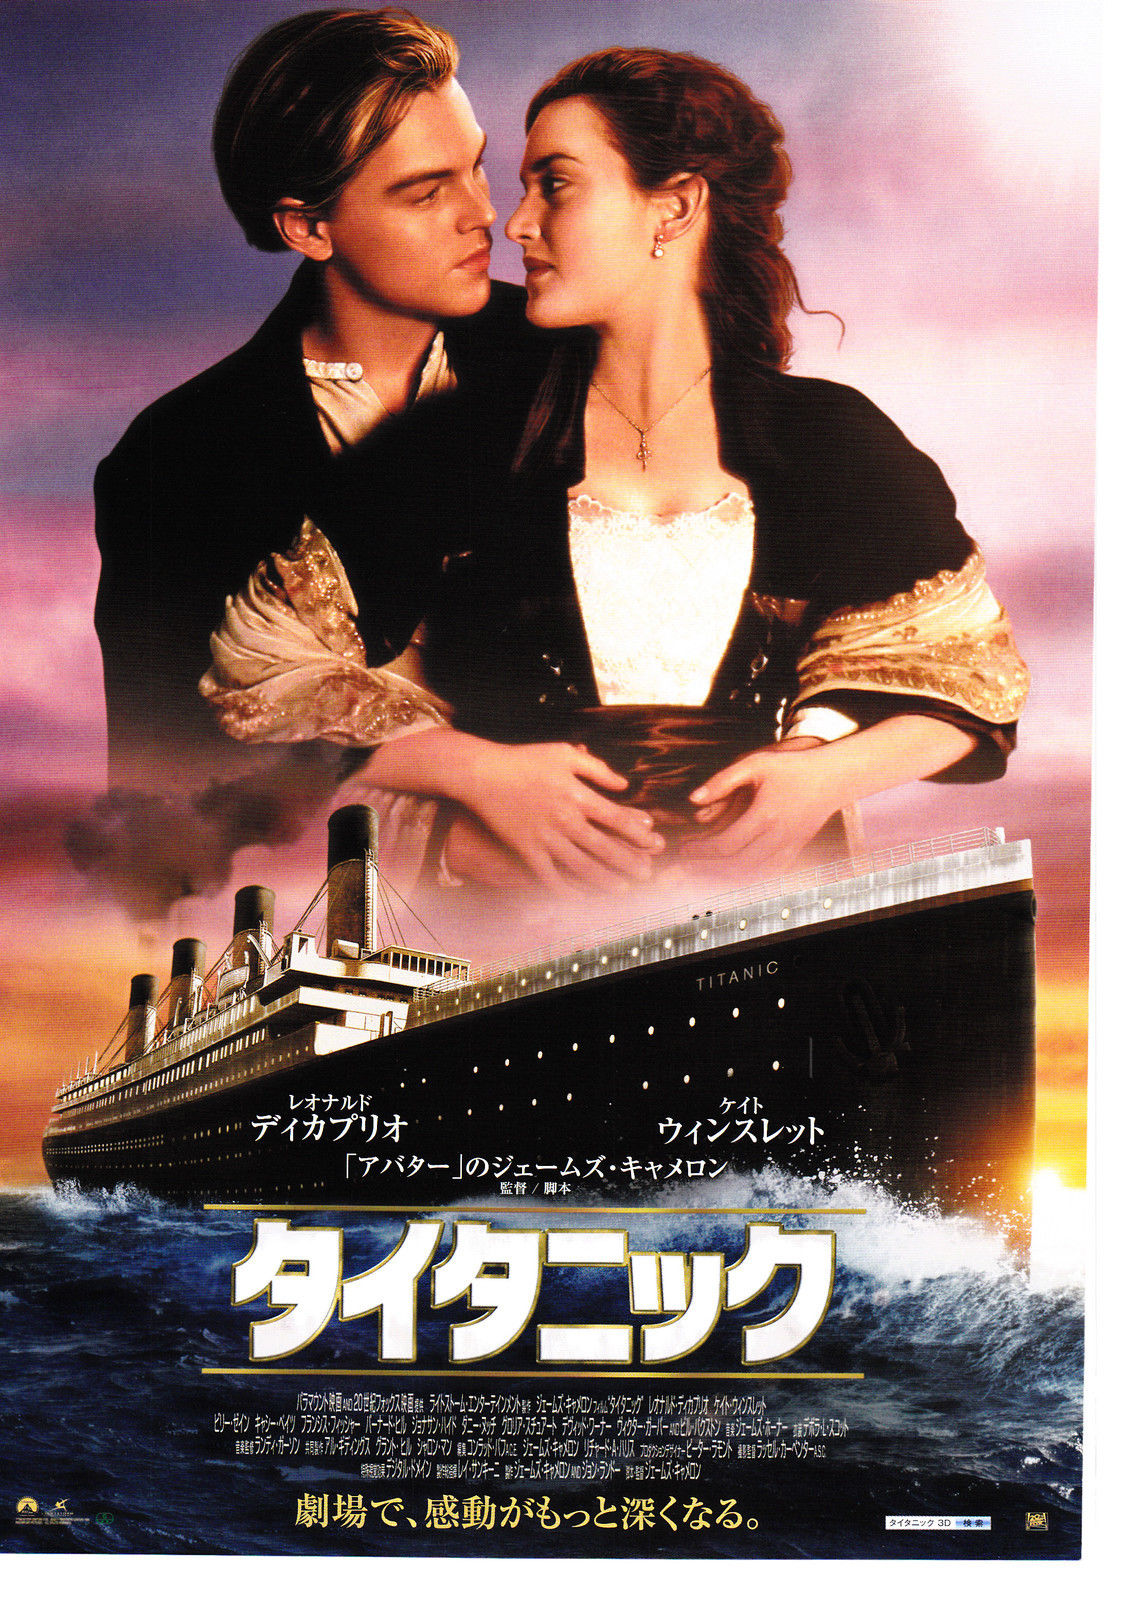 an analysis of the james camerons titanic film Get all the details on titanic: analysis description titanic (1997) directed by james cameron home tragedythis is a big film, so cameron is able to cram.